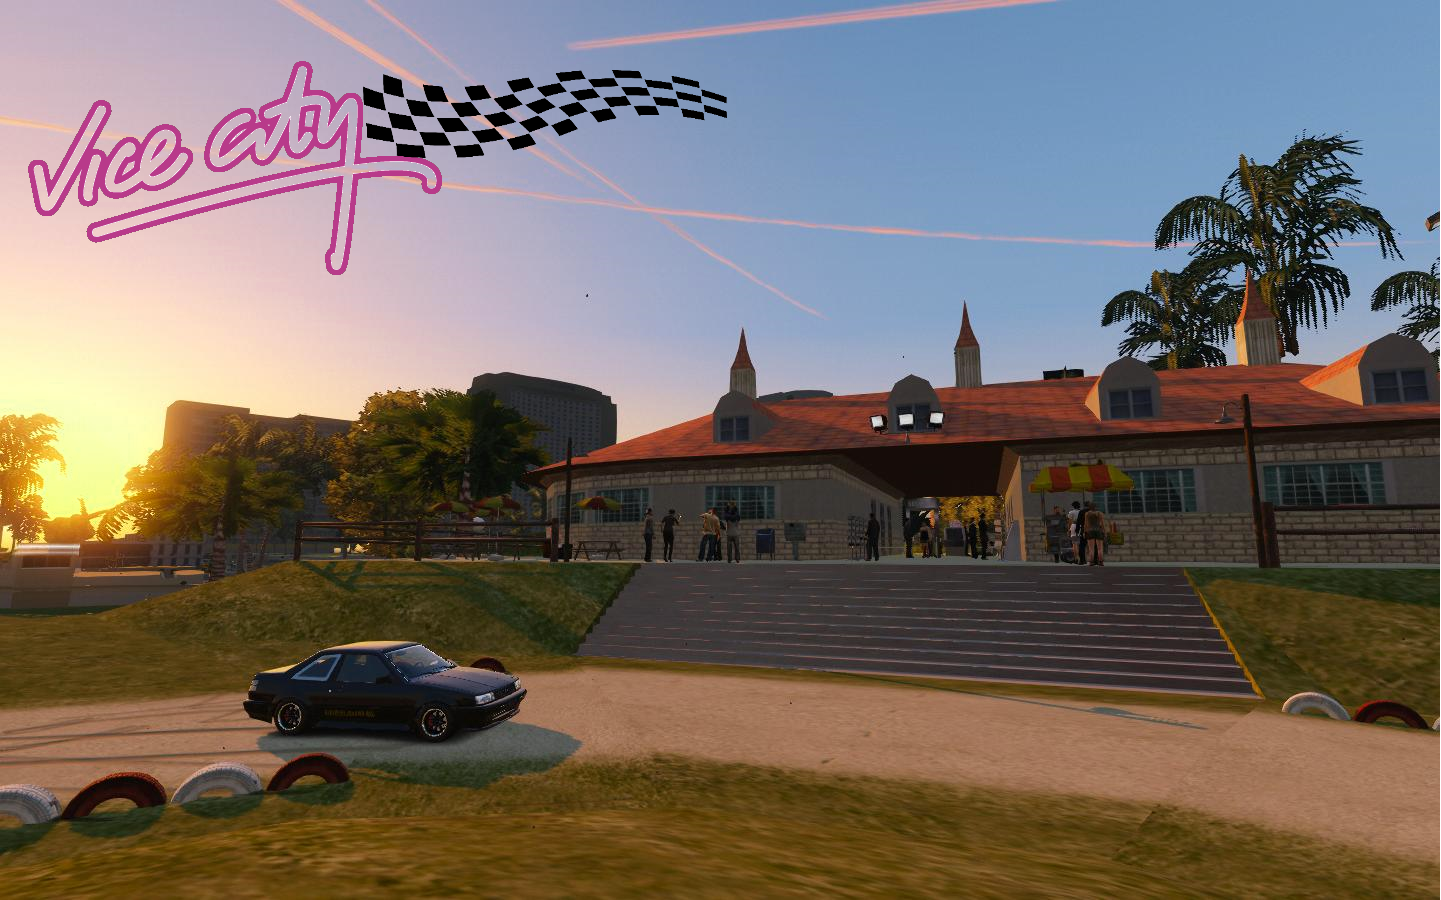 gta vice city cars location in maps